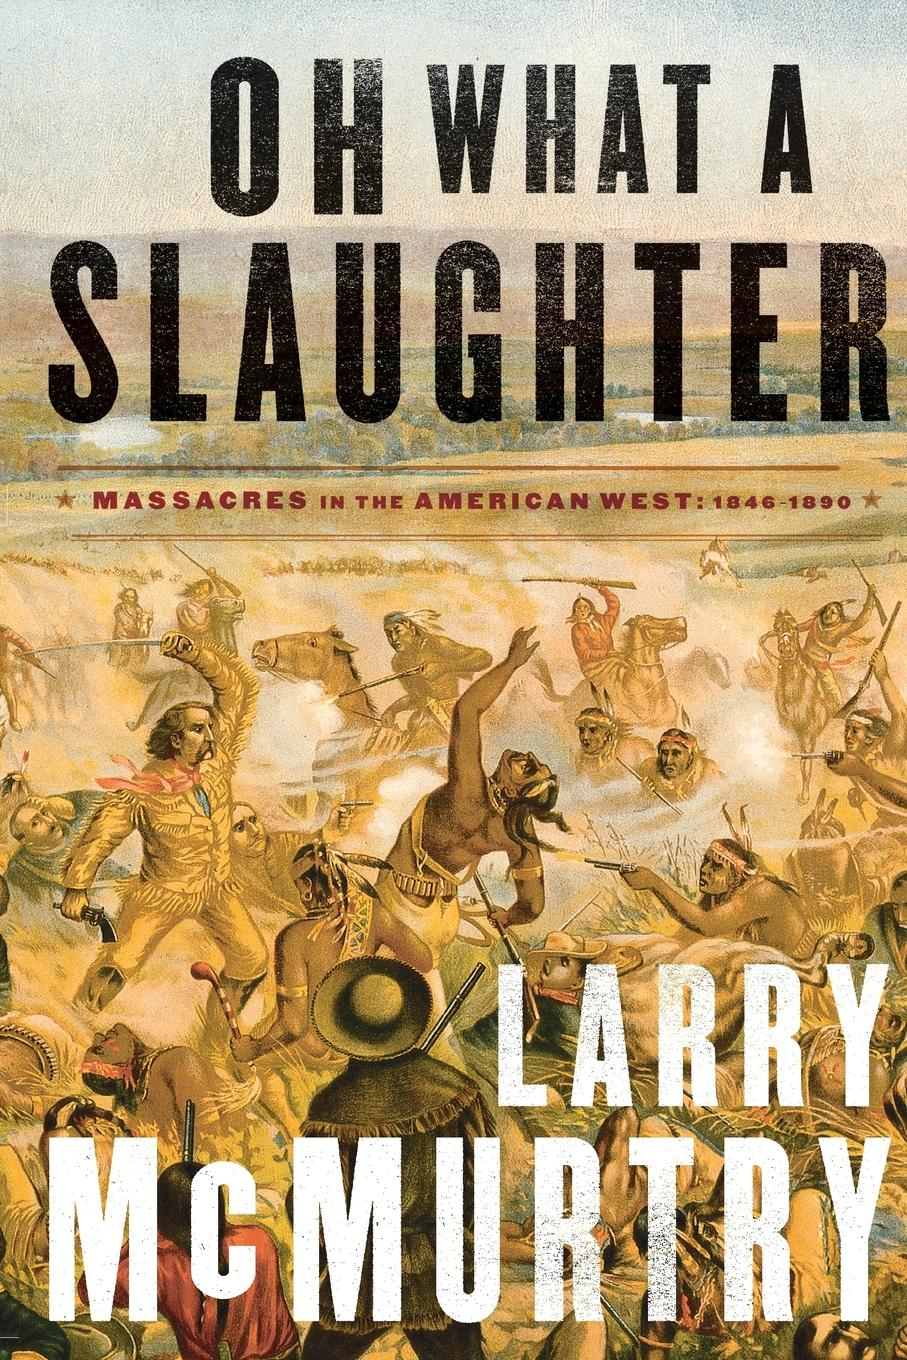 Larry McMurtry Oh What a Slaughter. Massacres in the American West: 1846--1890 marked in ink